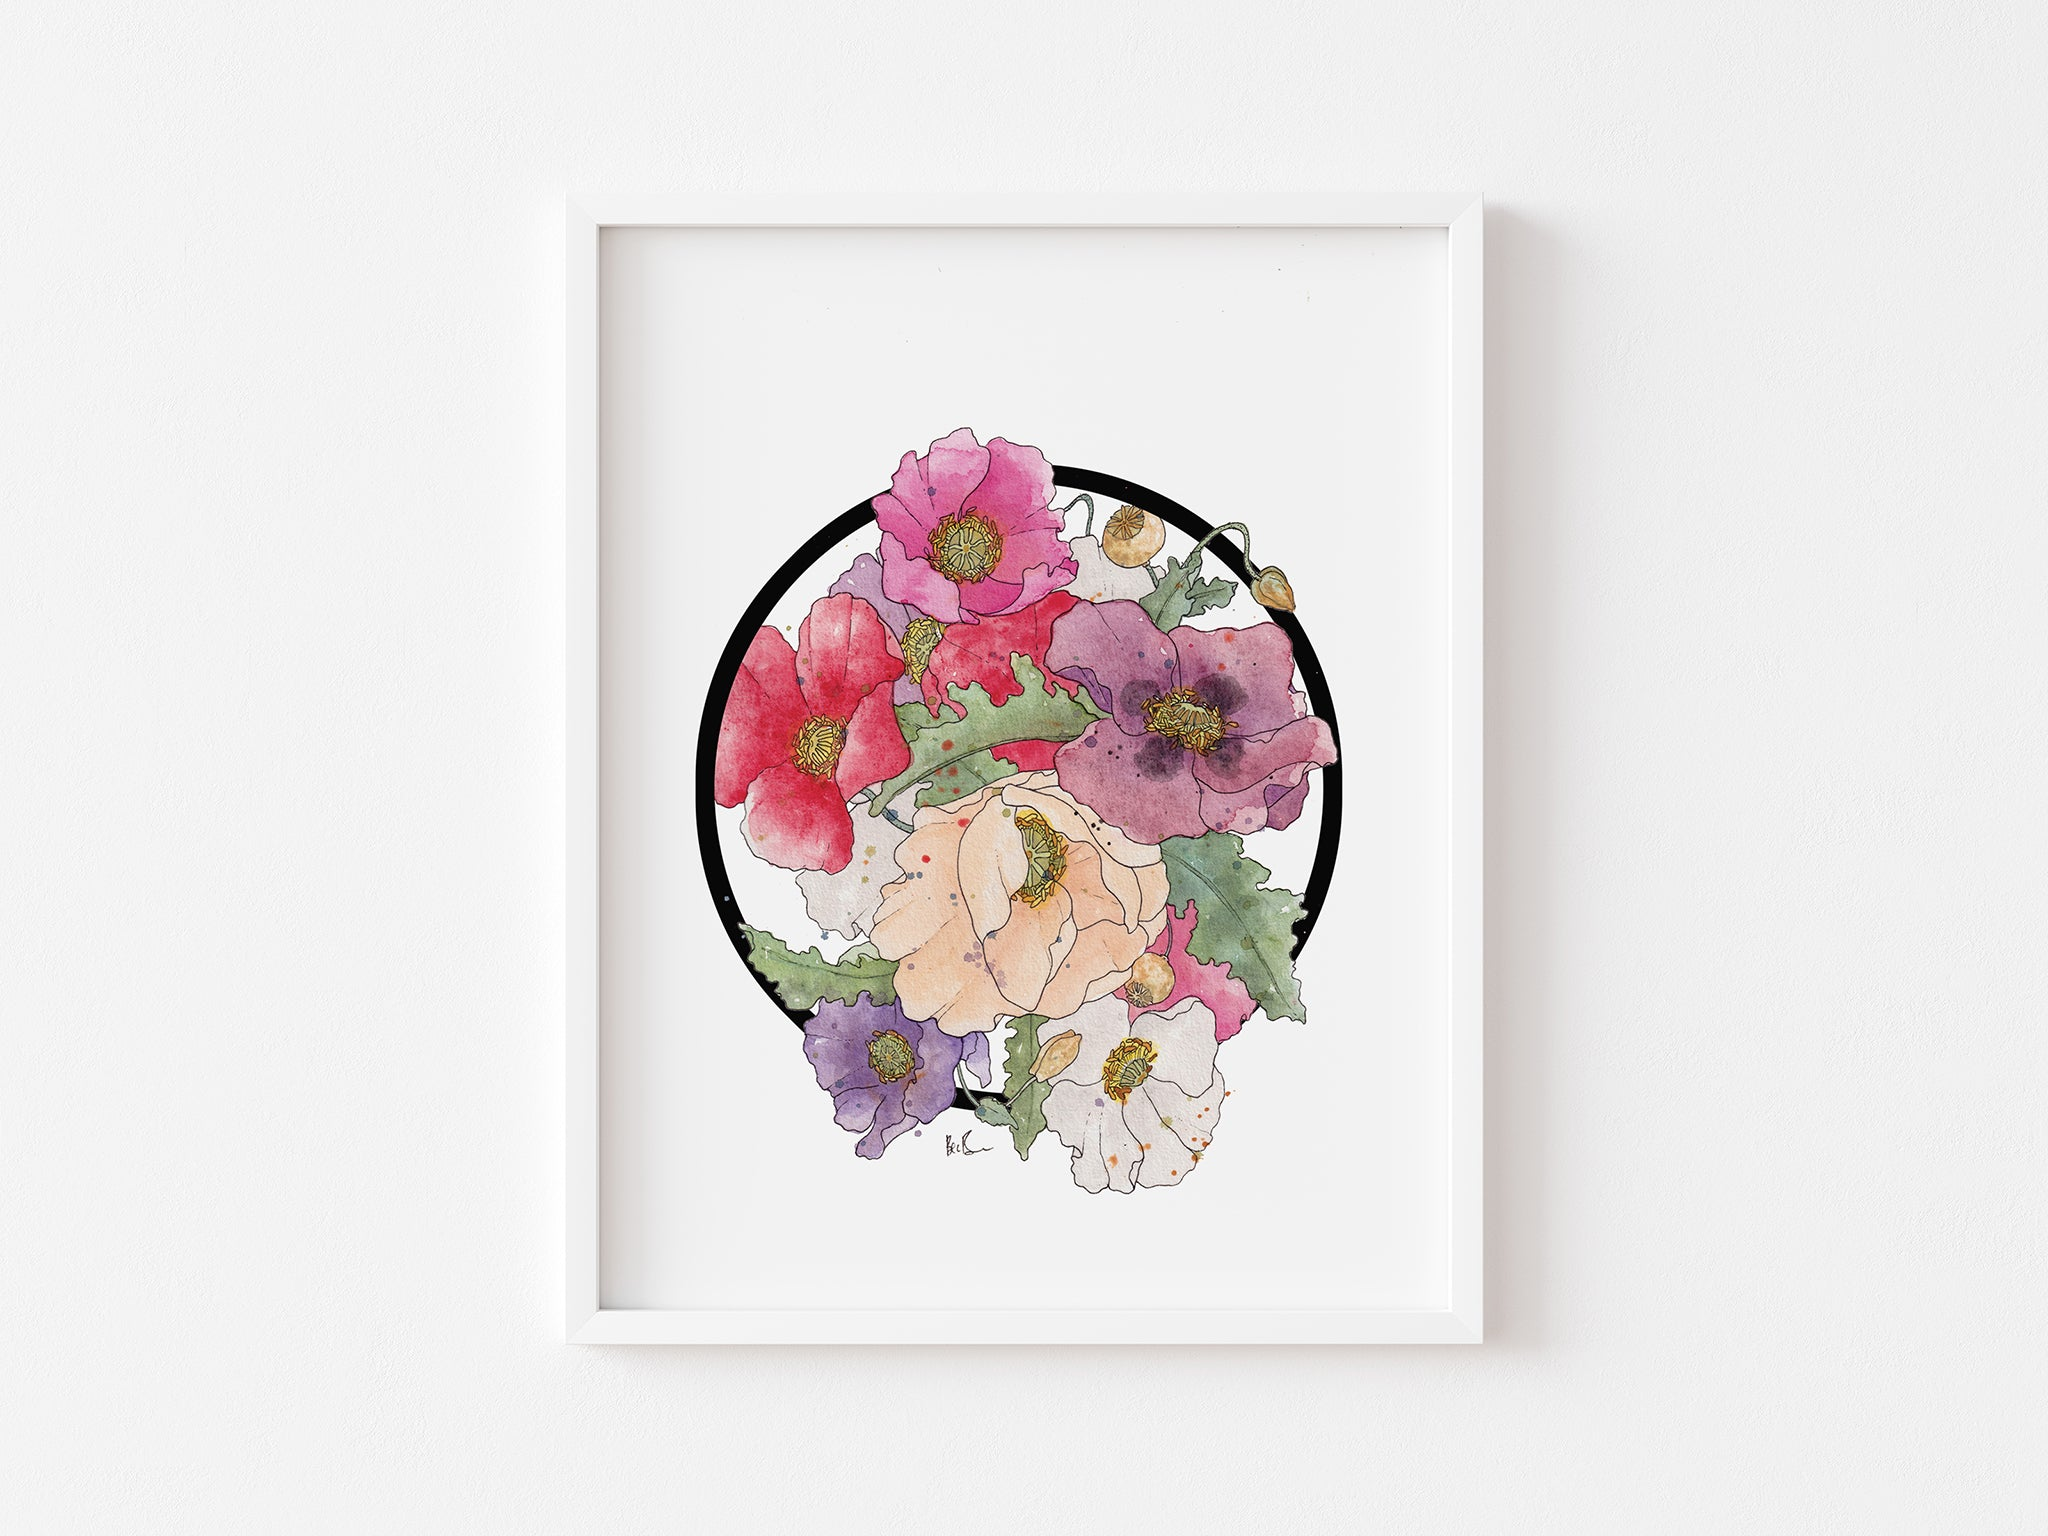 Bec Brown Clouds of Colour Poppy watercolour framed artwork